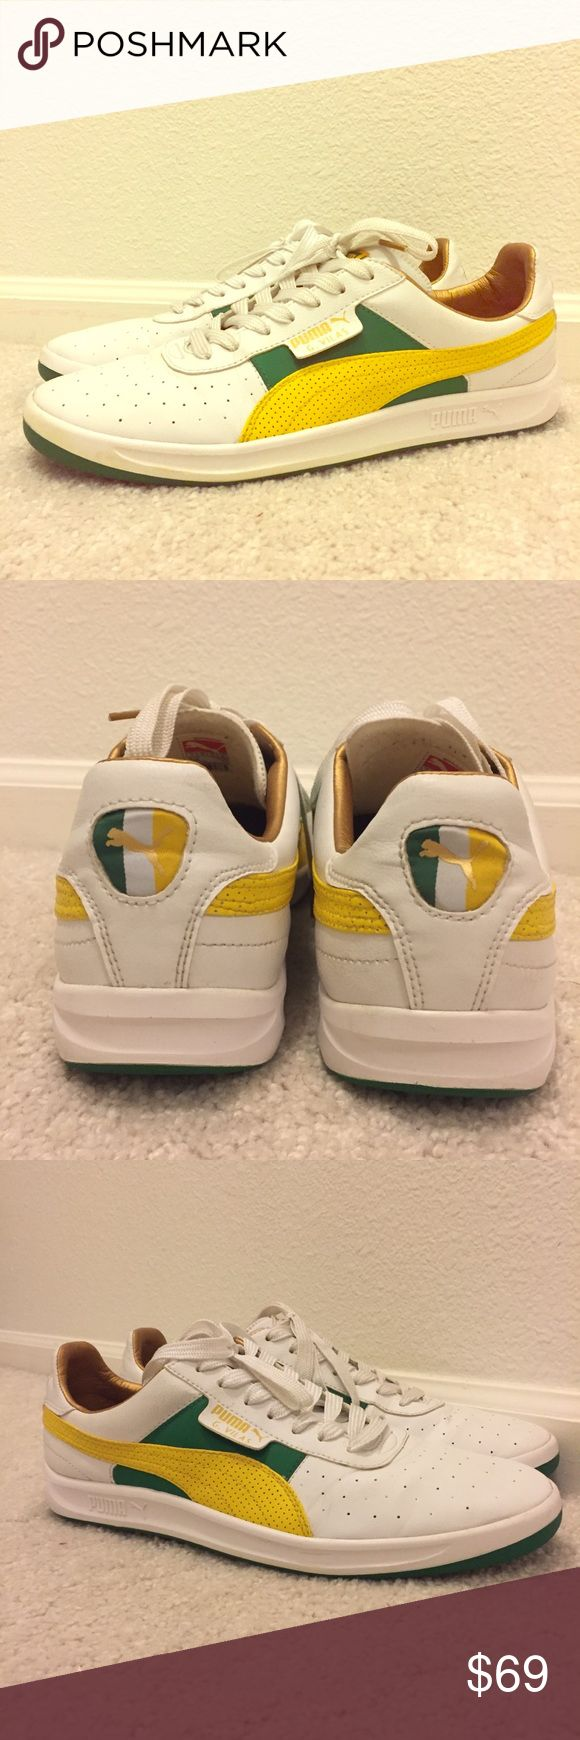 Puma G Vilas. Rasta Jamaican color way. Worn twice G vilas in rasta Jamaican colors size 10 men's. With the gold interior. A real show stopper. Bought them and wore them twice. I later moved and they've been hidden in a box since! Super comfortable and they're like new! Puma Shoes Sneakers